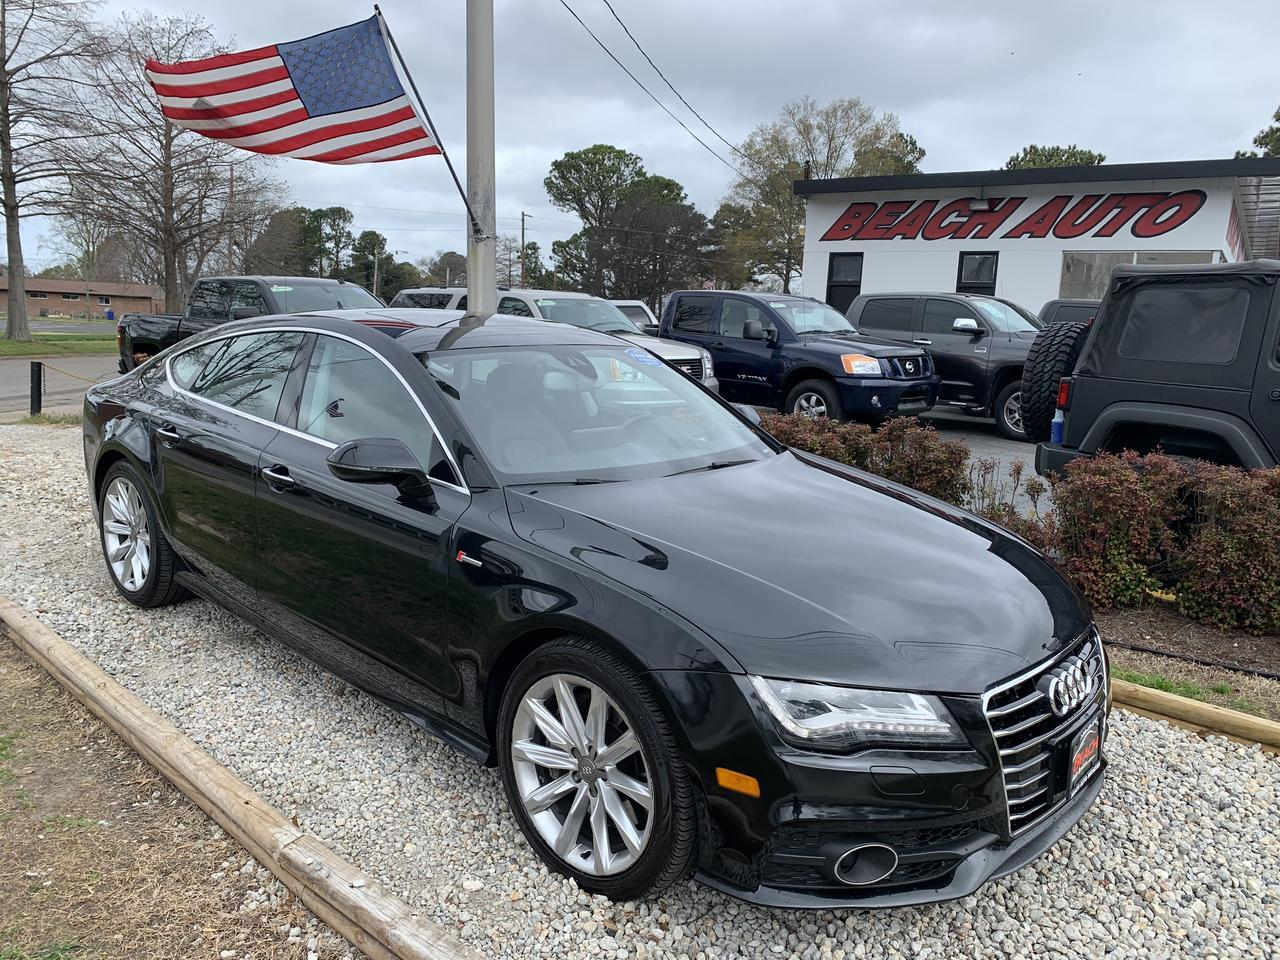 2013 AUDI A7 3.0 PRESTIGE SPORTBACK, WARRANTY, LEATHER, NAVIGATION, SUNROOF, KEYLESS START, HEATED SEATS! Norfolk VA